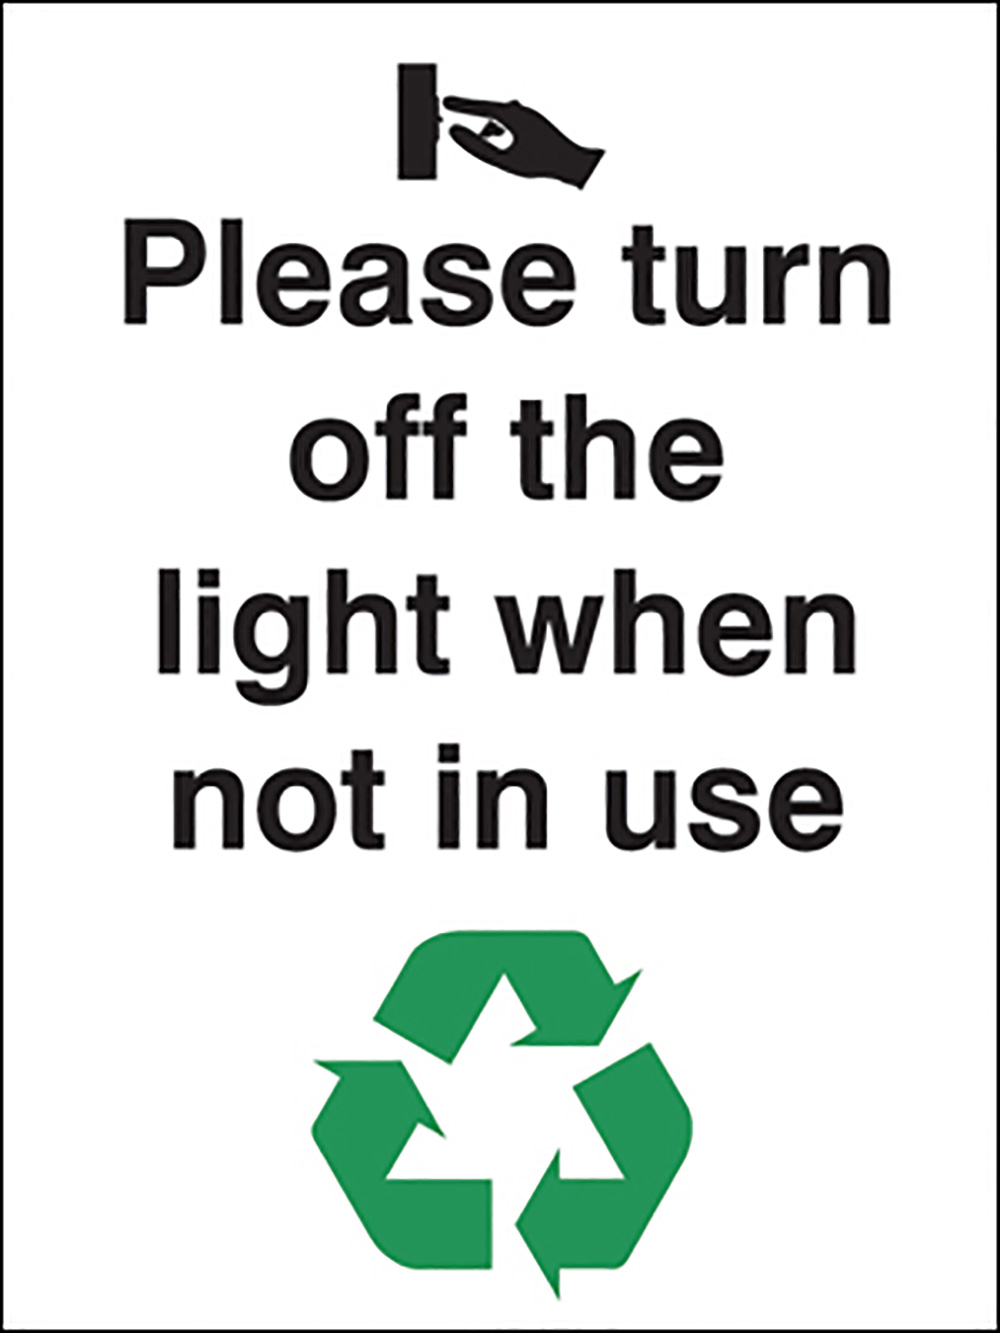 Please turn off the lights when not in use  100x75mm 1.2mm Rigid Plastic Safety Sign